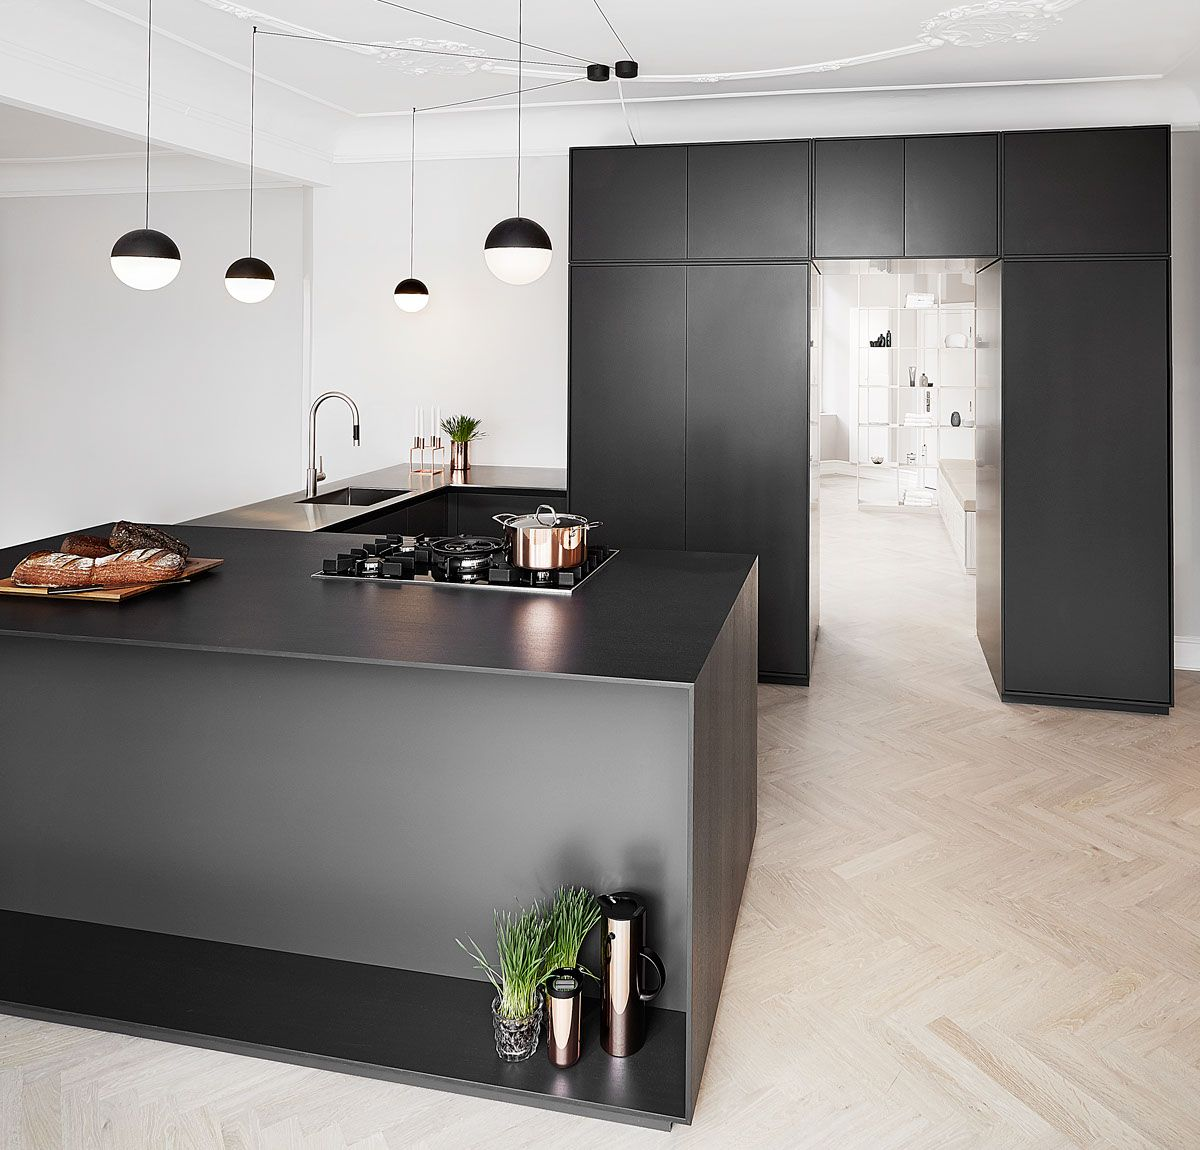 boform infinity one | Cucina | Pinterest | Infinity, Kitchens and ...